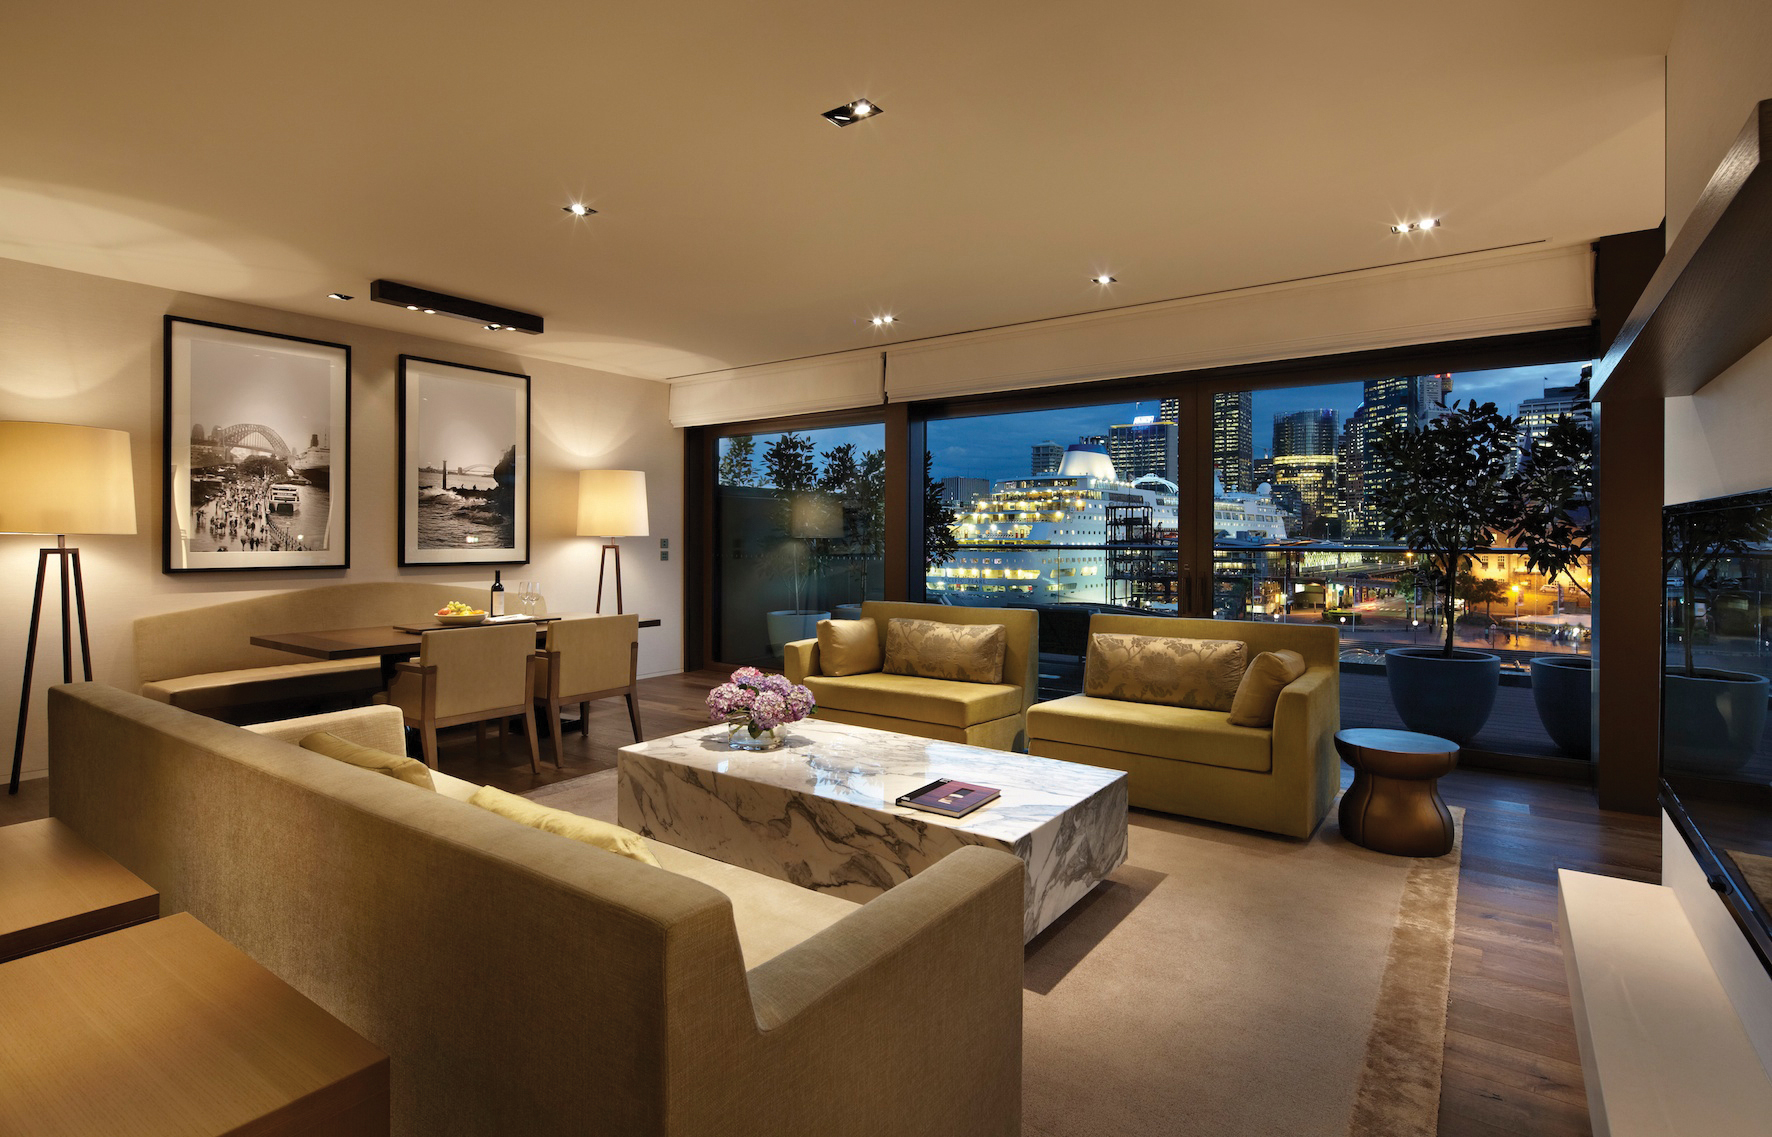 Philips Lighting Raises Bar For Ambient Lighting With Its